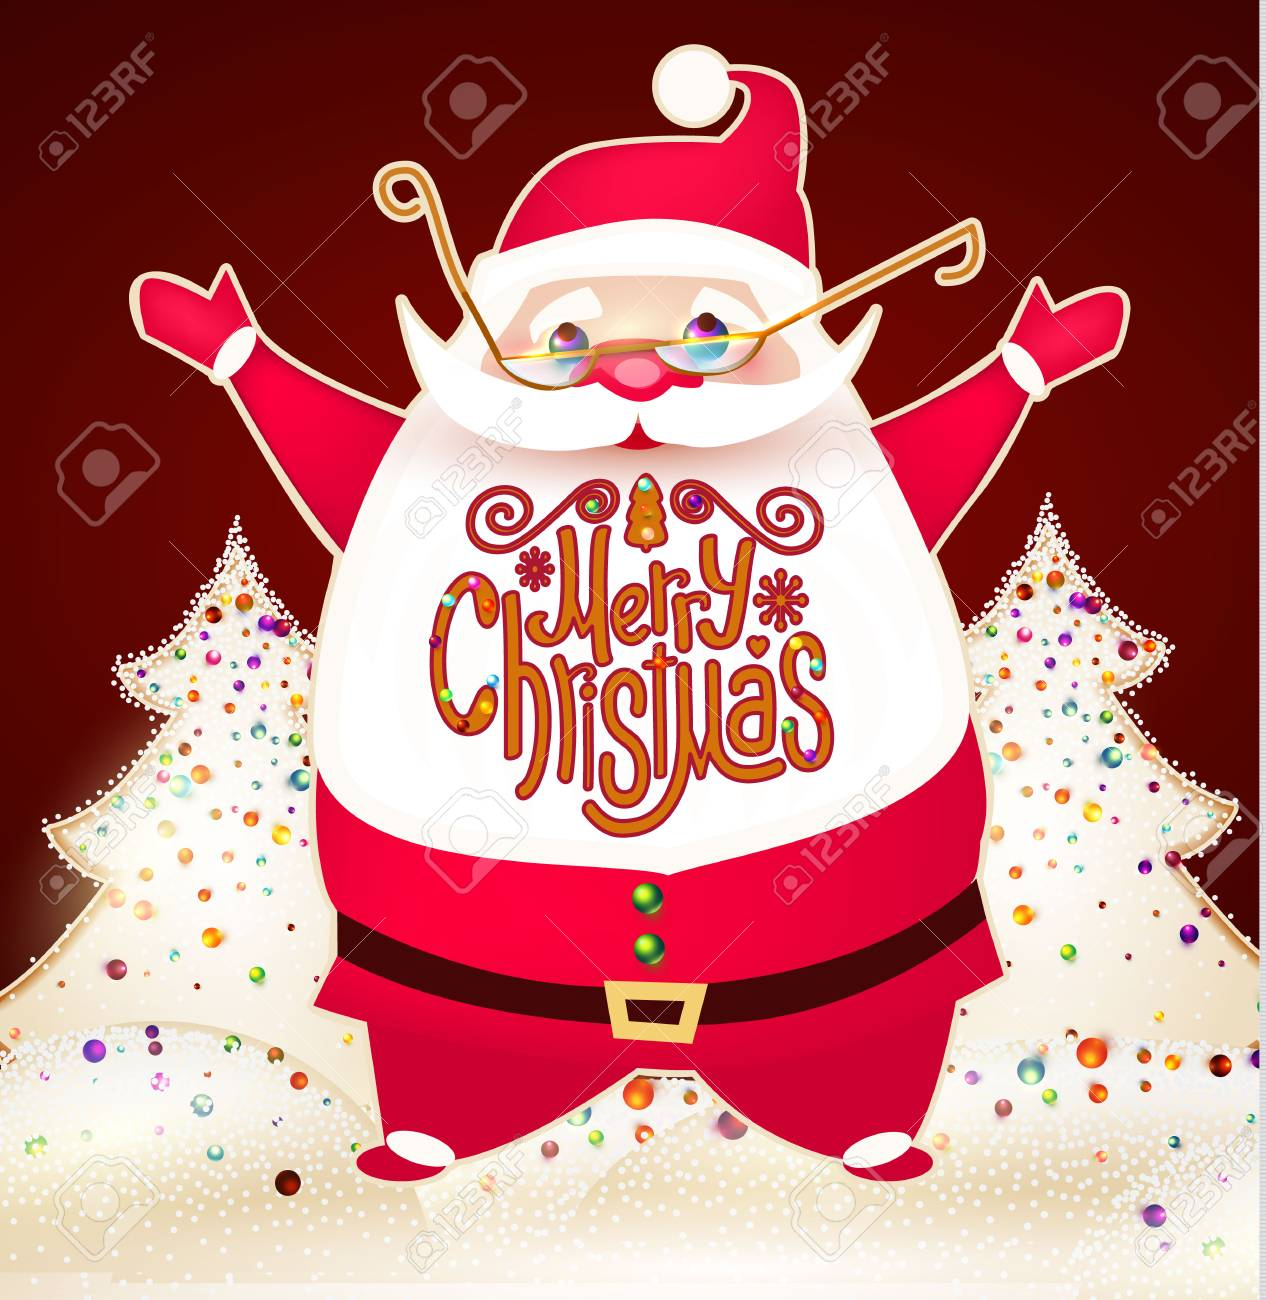 smiling santa claus christmas card template with snow and lettering of merry christmas stock vector